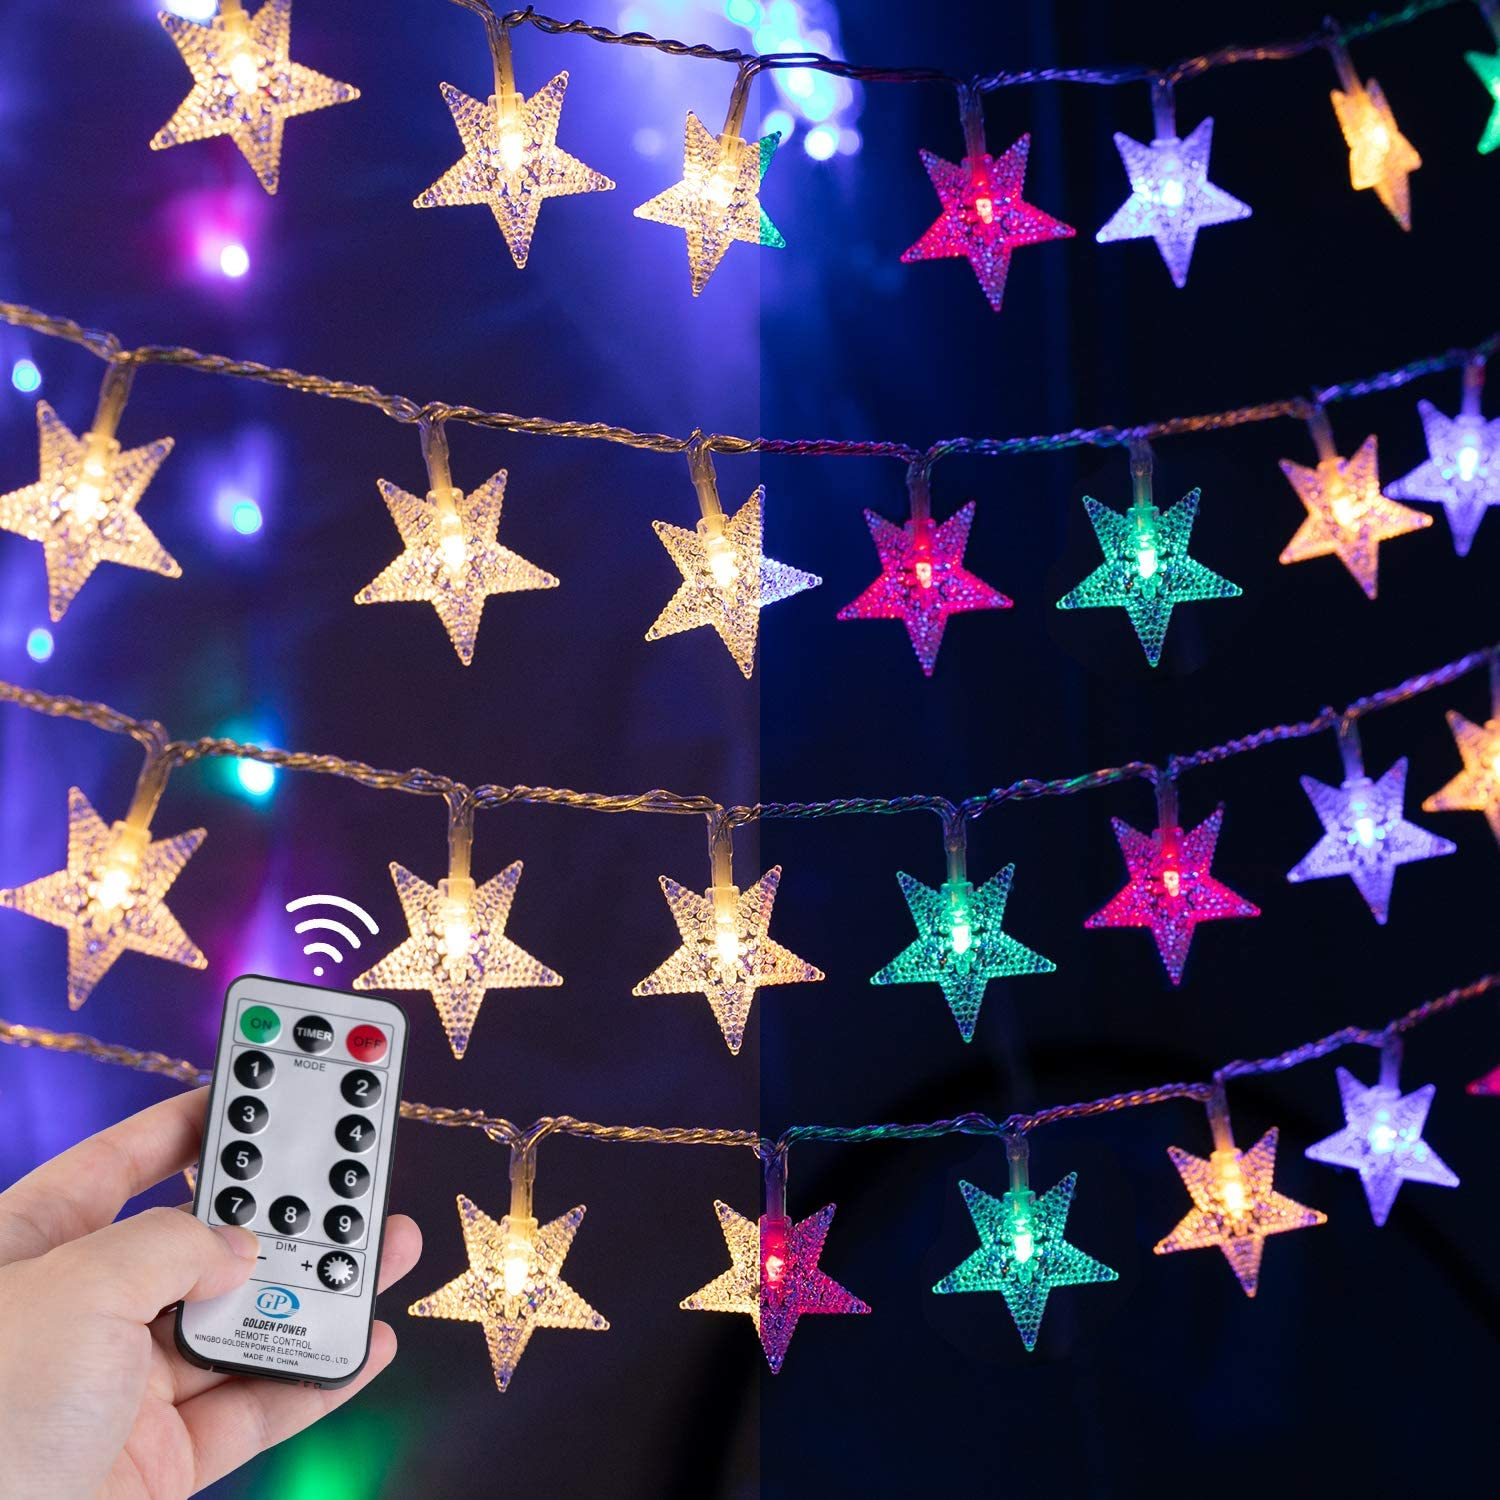 Star String Lights for Bedroom - 100 LED 33Ft Twinkle Fairy Lights with Remote & Plug & 8 Modes Outdoor/Indoor Holiday Wedding Christmas Color Changing Decor | Warm White + Multicolor